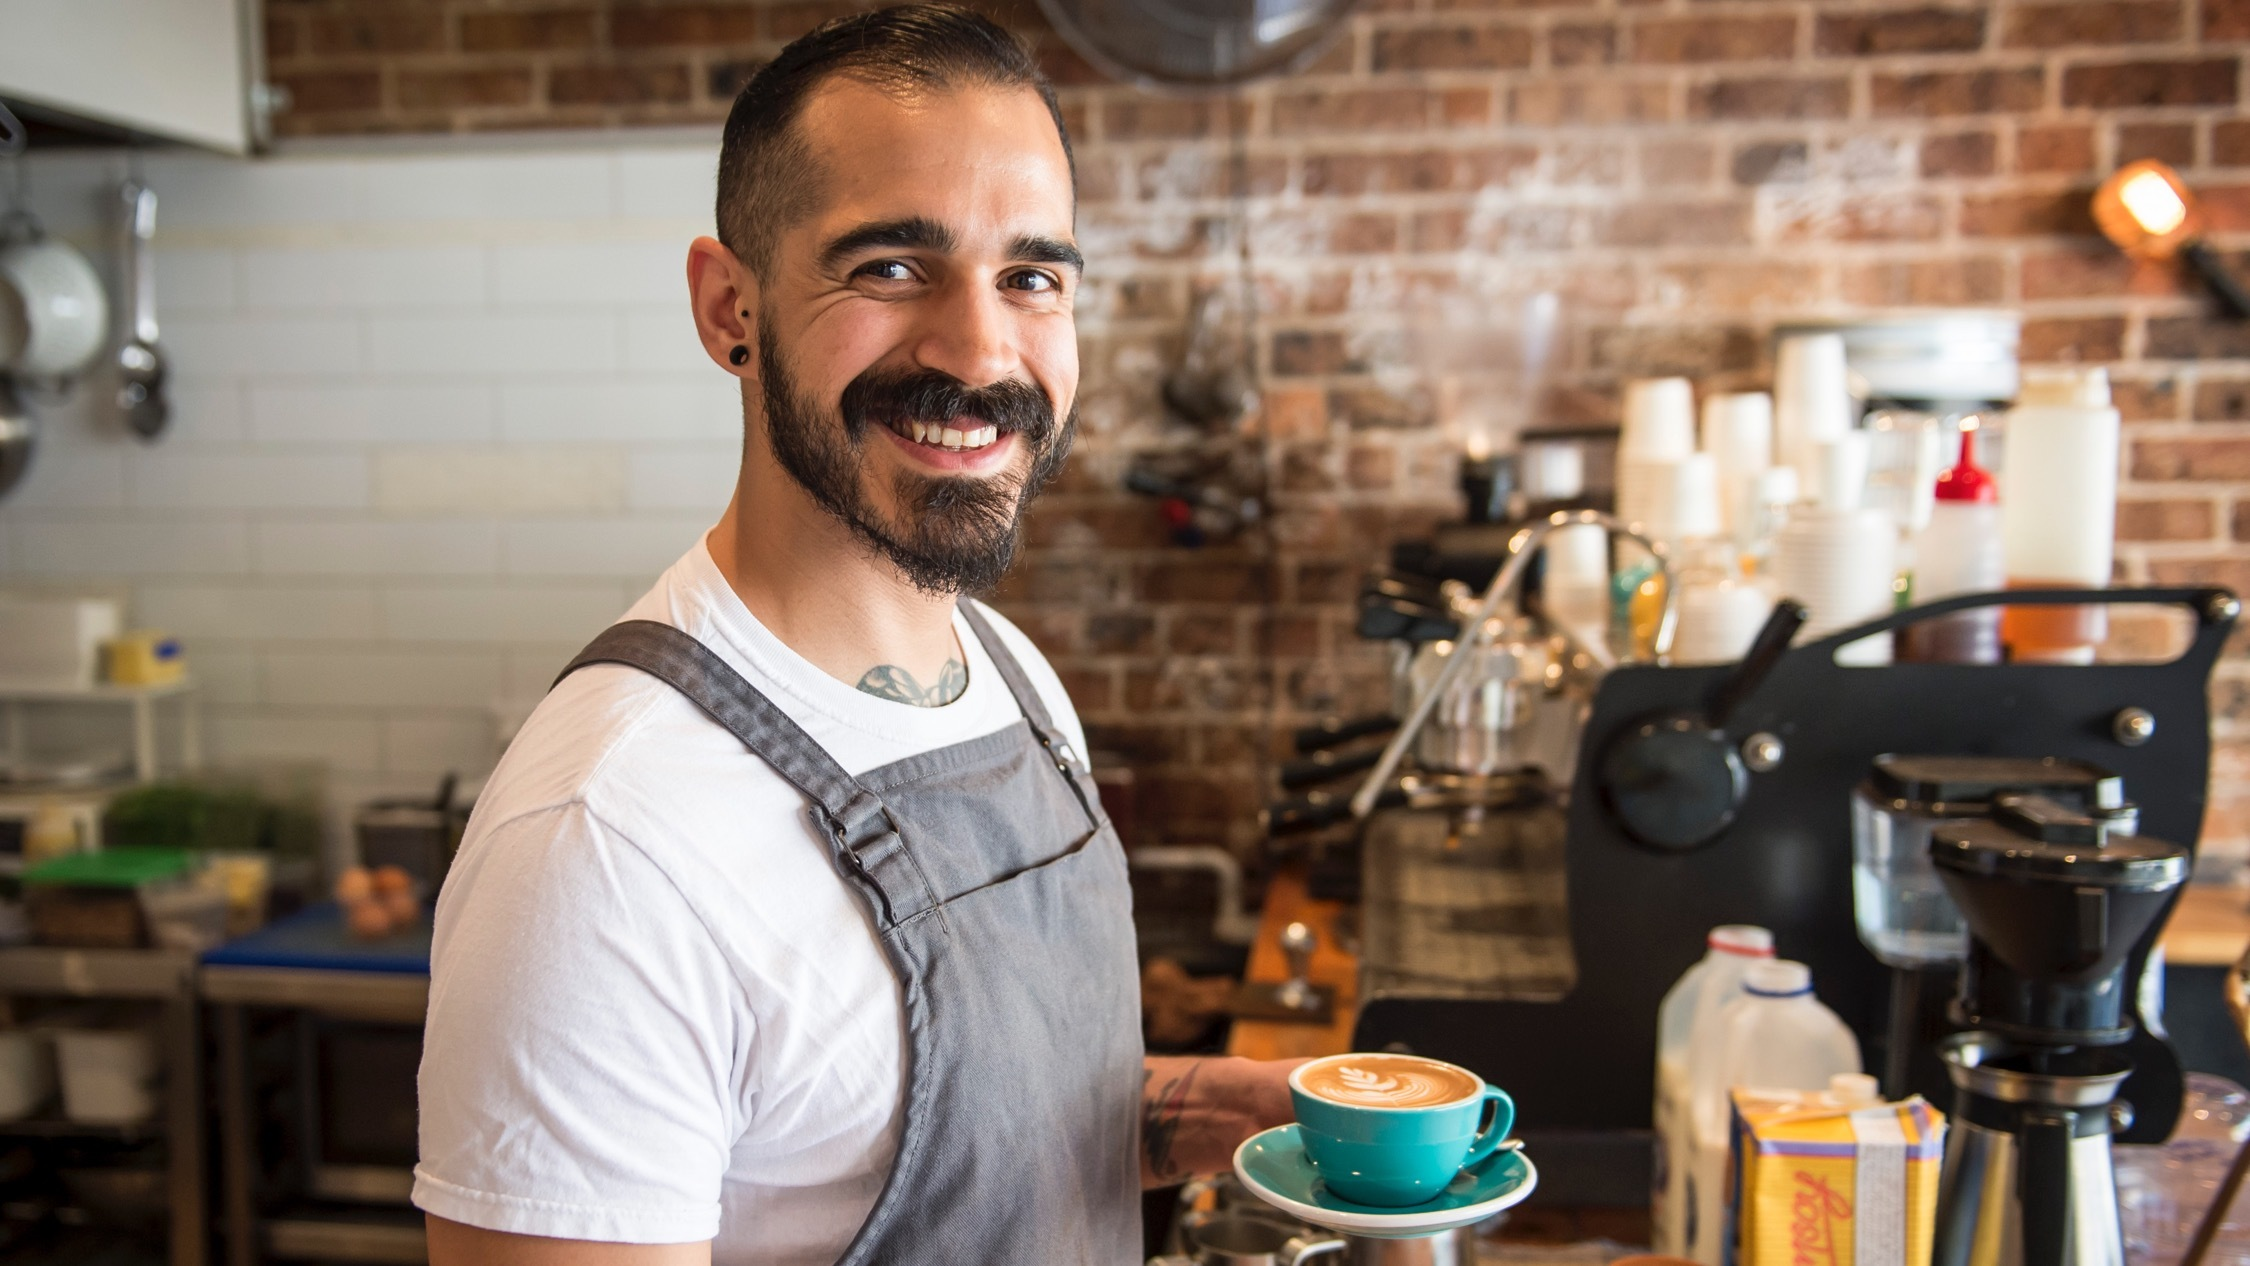 Pyrmont café owner Eric Mendoza shares his highlights of the area